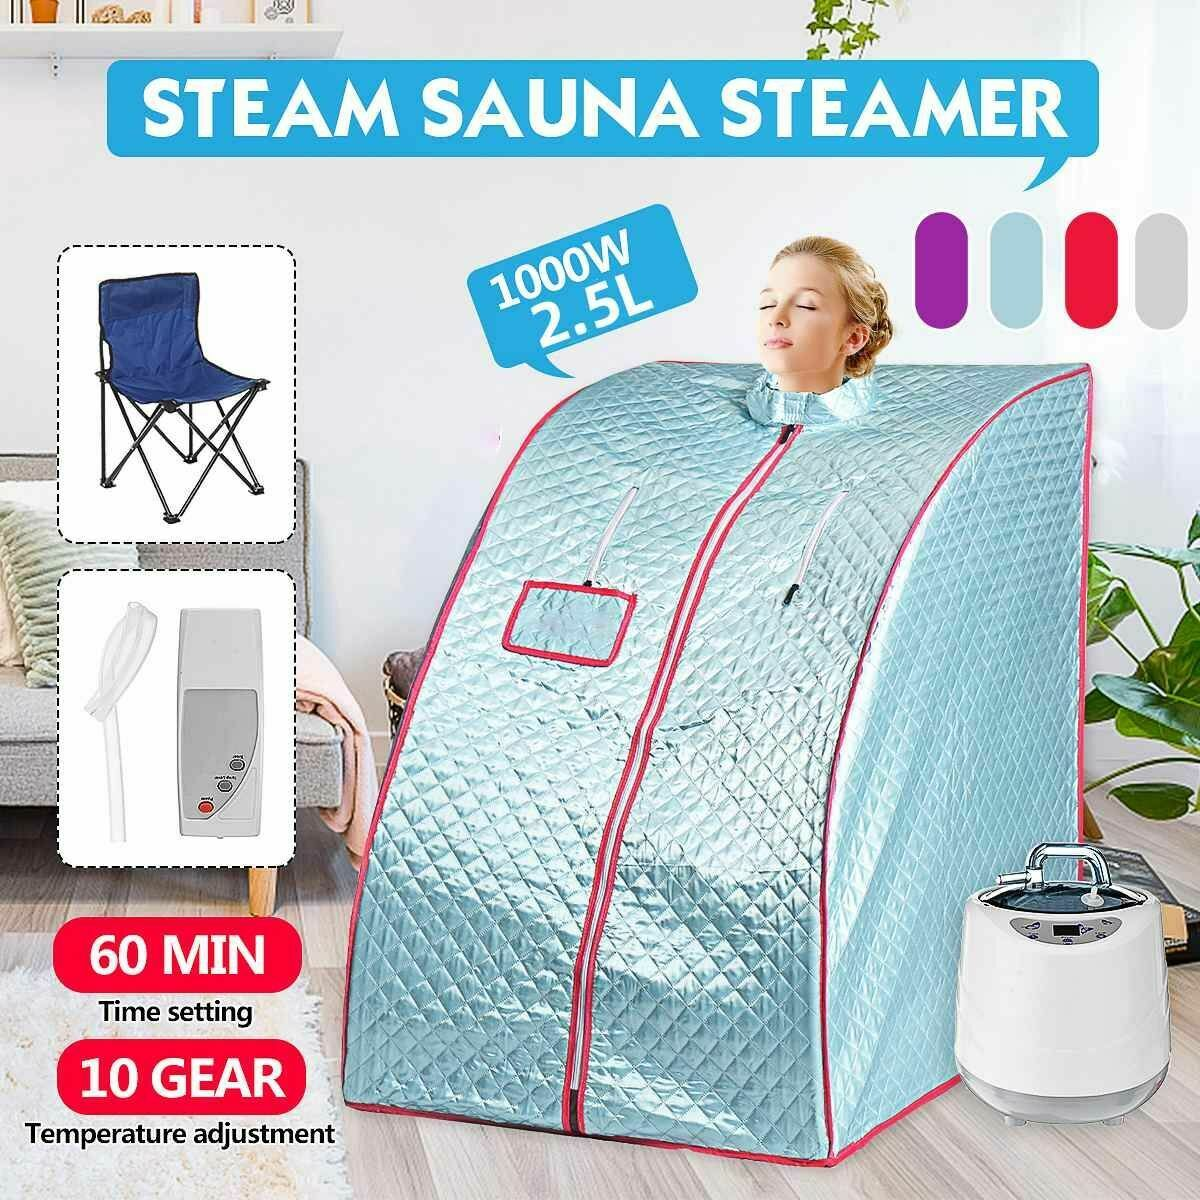 Sauna Sweat Steamer Portable Steam Bath With Fold Chair For Ease Insomnia 1000W